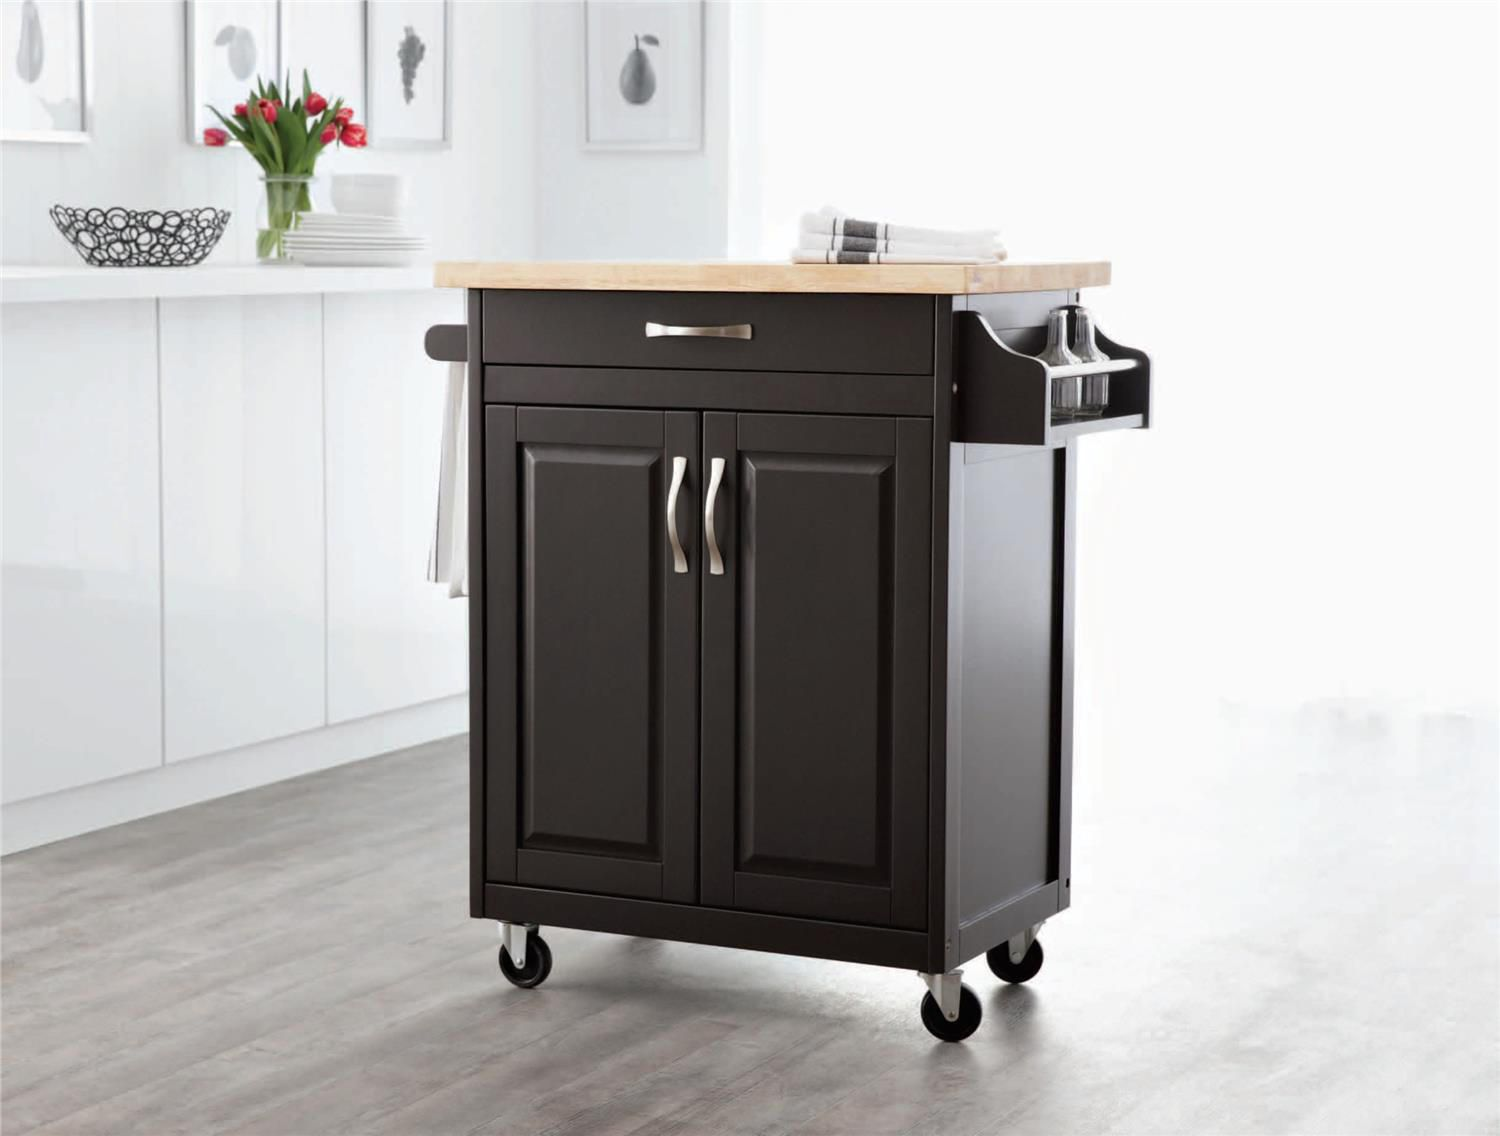 Hometrends kitchen island cart walmart canada